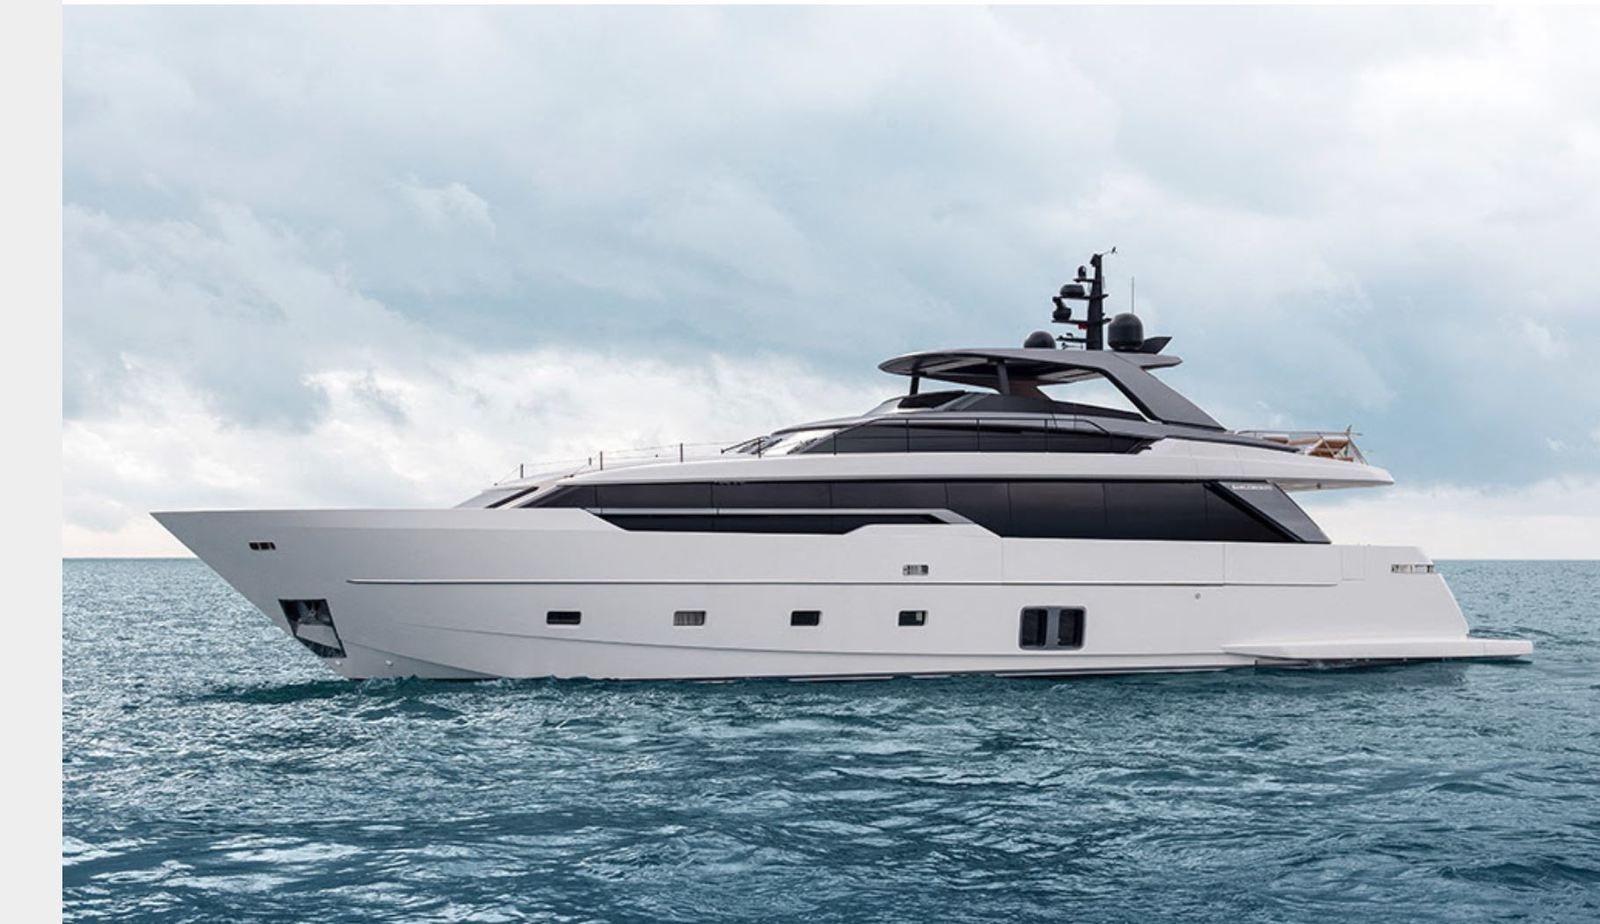 The First Sanlorenzo SL96 Asymmetric sold in Asia by Simpson Marine into Hong-Kong